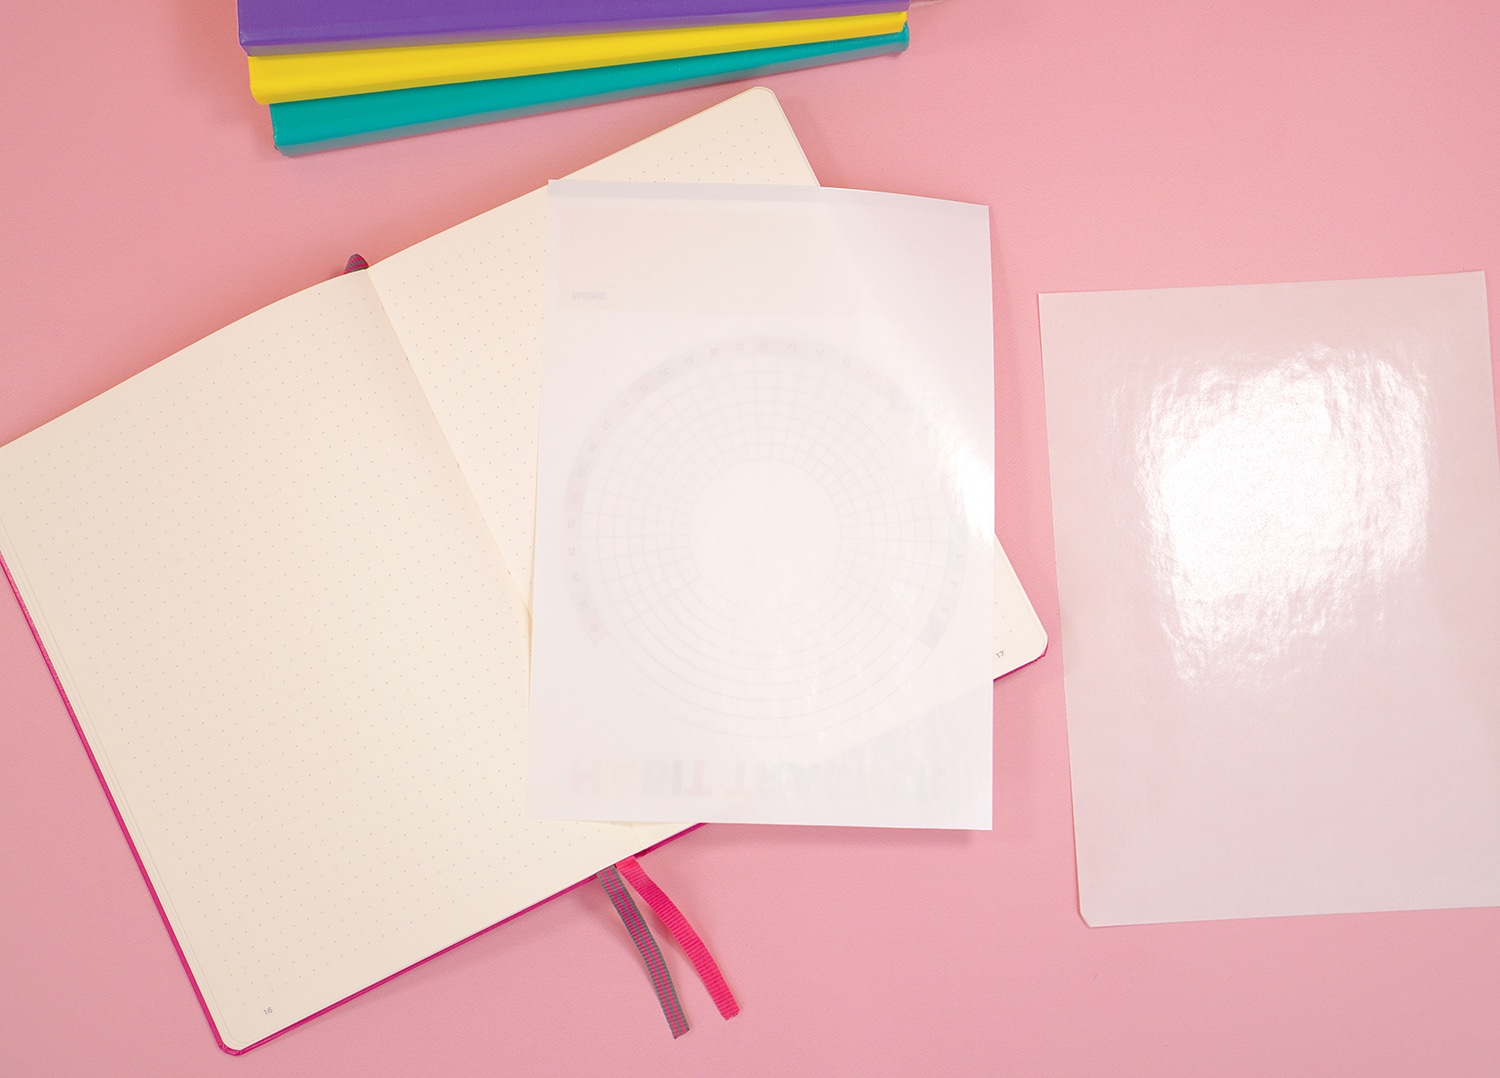 Open bullet journal on pink background with peeled sheet of sticker paper on top